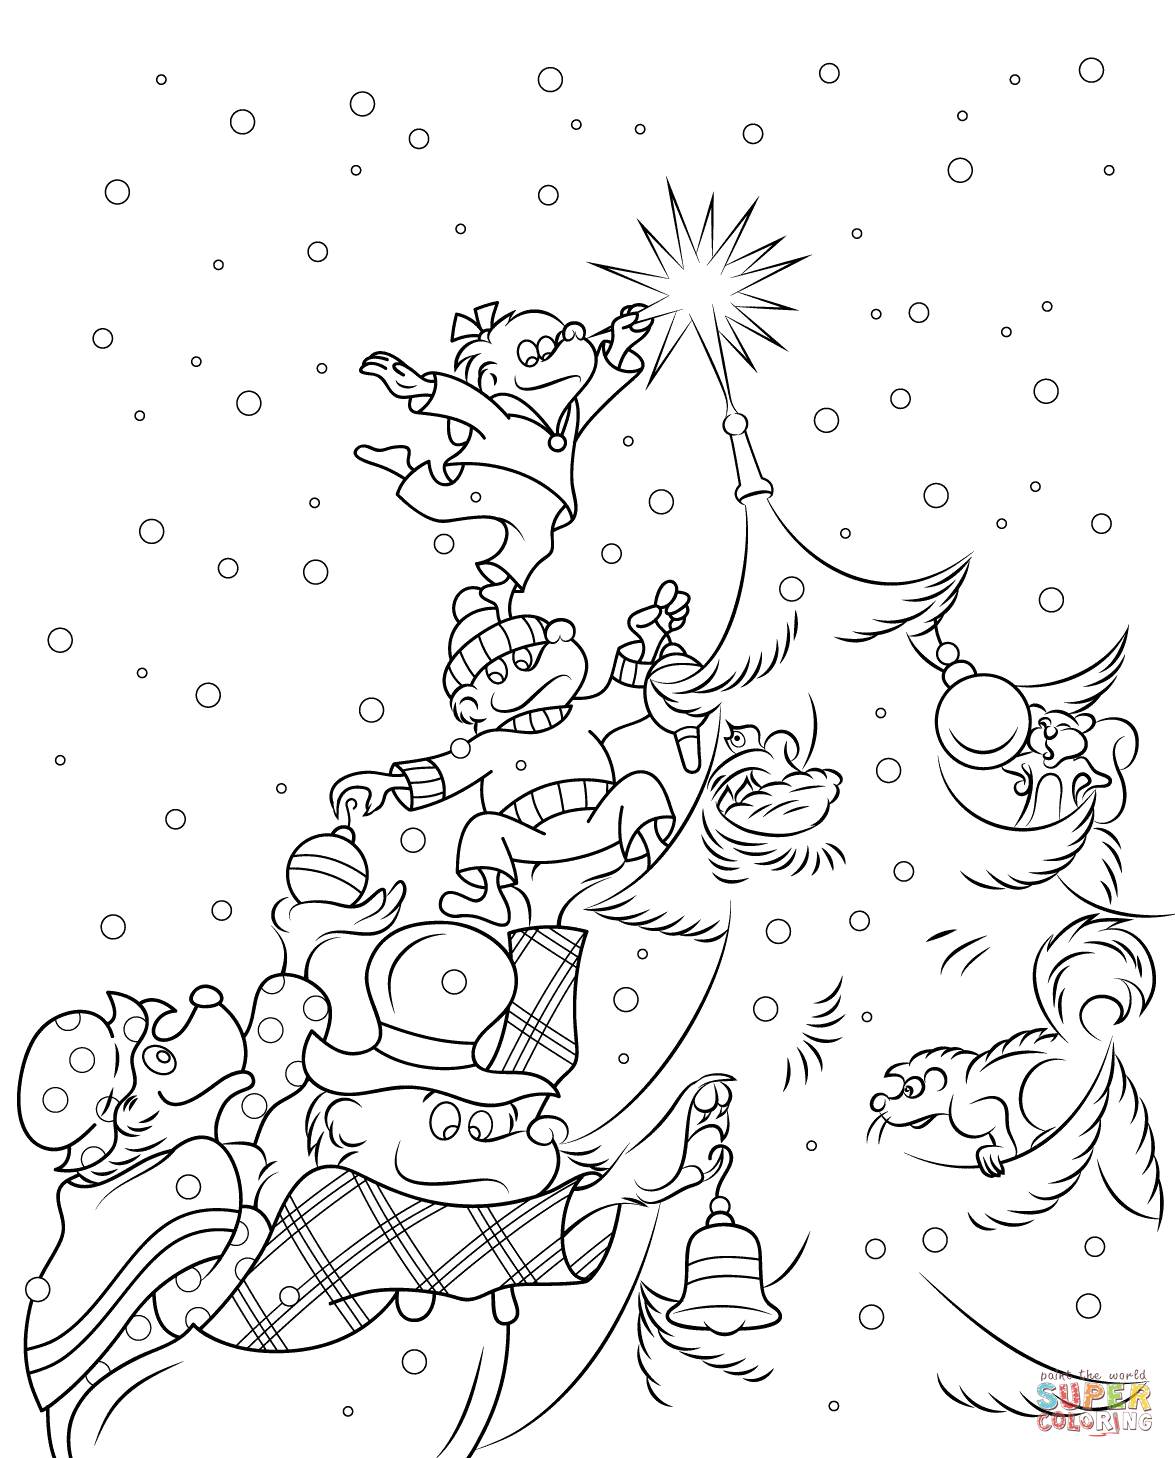 The Berenstain Bears Christmas Tree Coloring Page